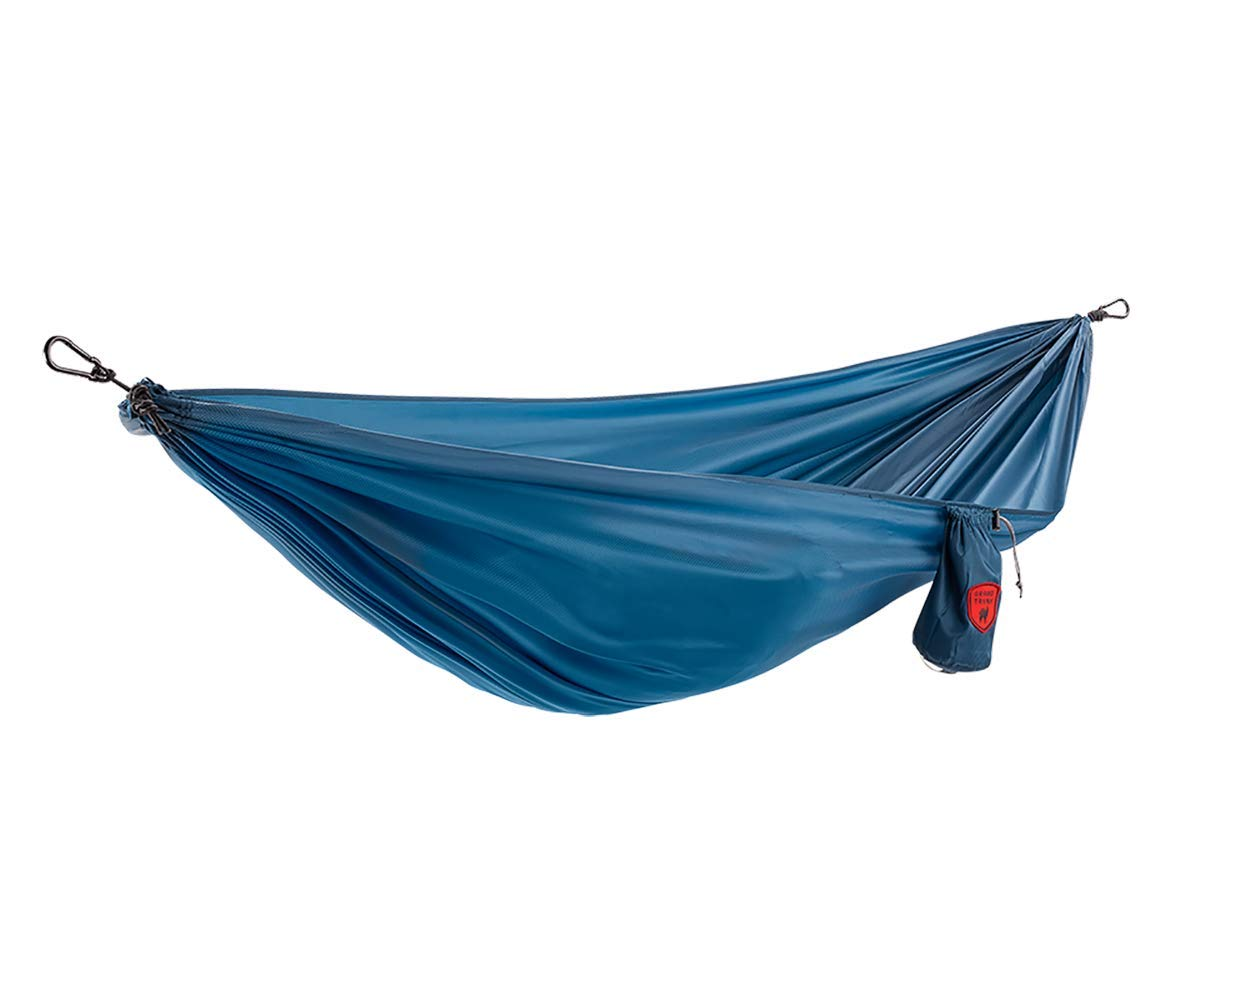 Grand Trunk Ultralight Hammock |Starter Hammock | Portable Camping, Hiking, Backpacking, and Travel Hammock (Blue)